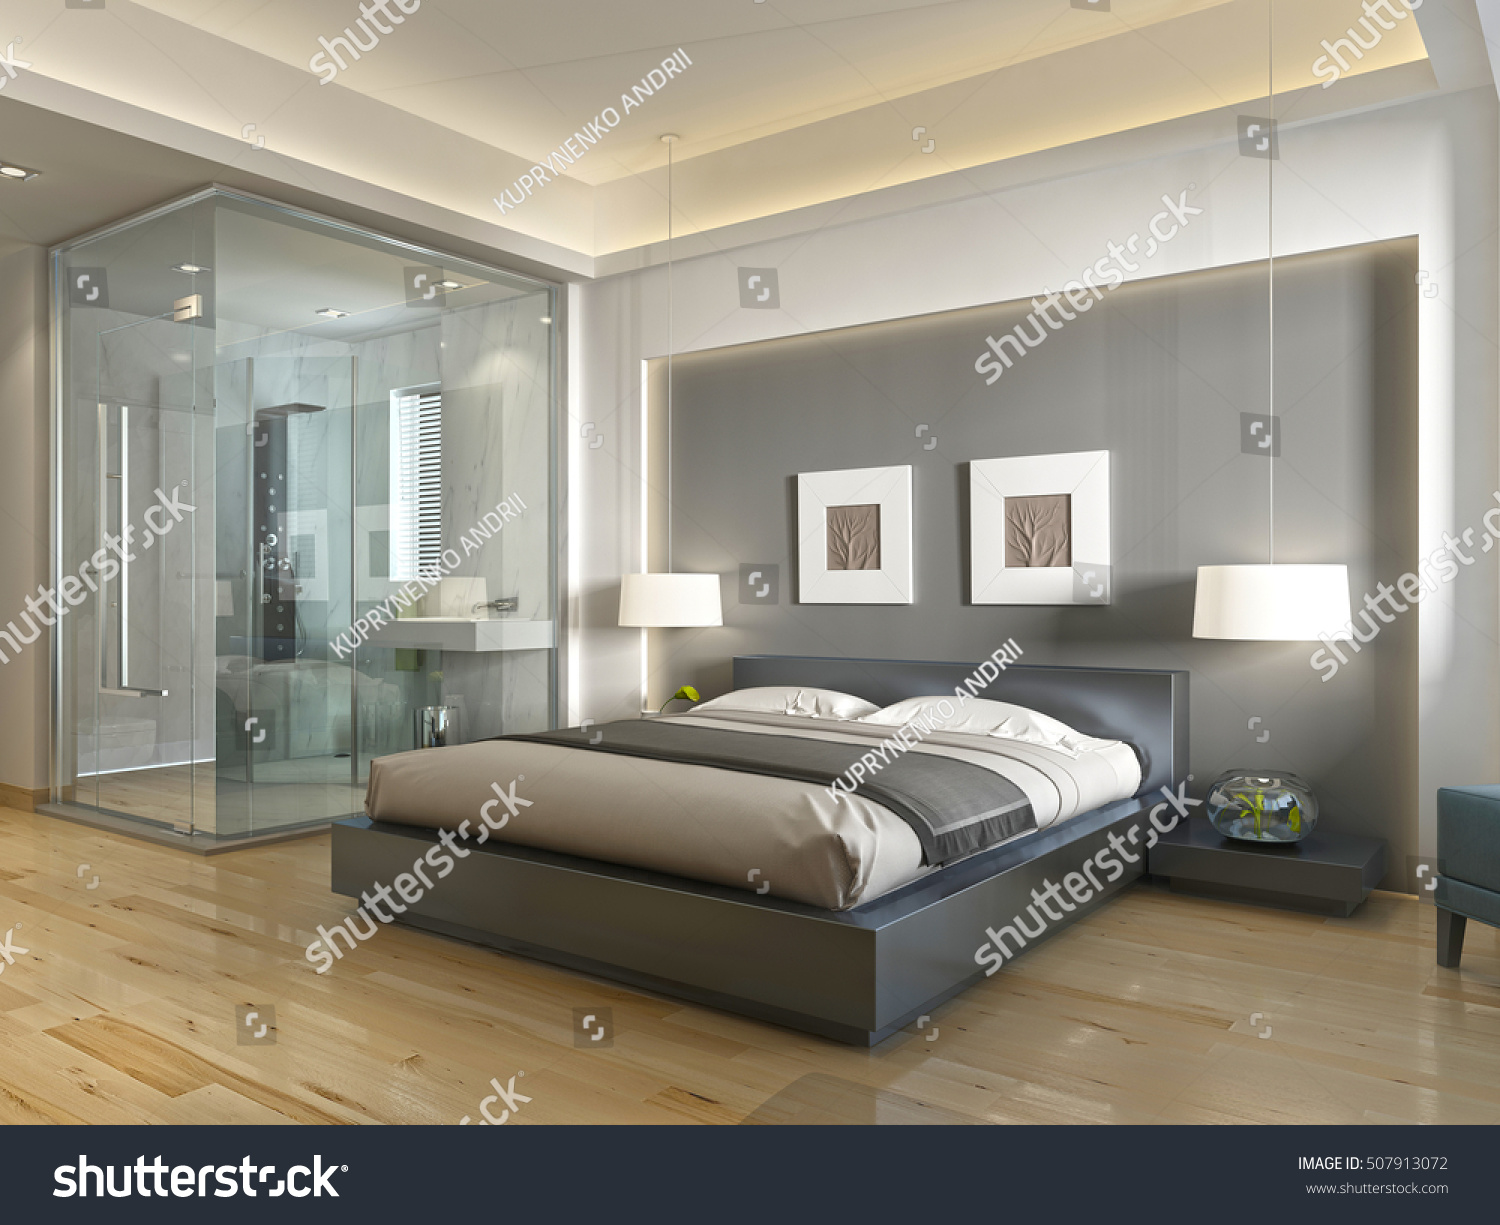 Modern Hotel Room With Large Bed Contemporary Style Elements Of Art Deco Decorative